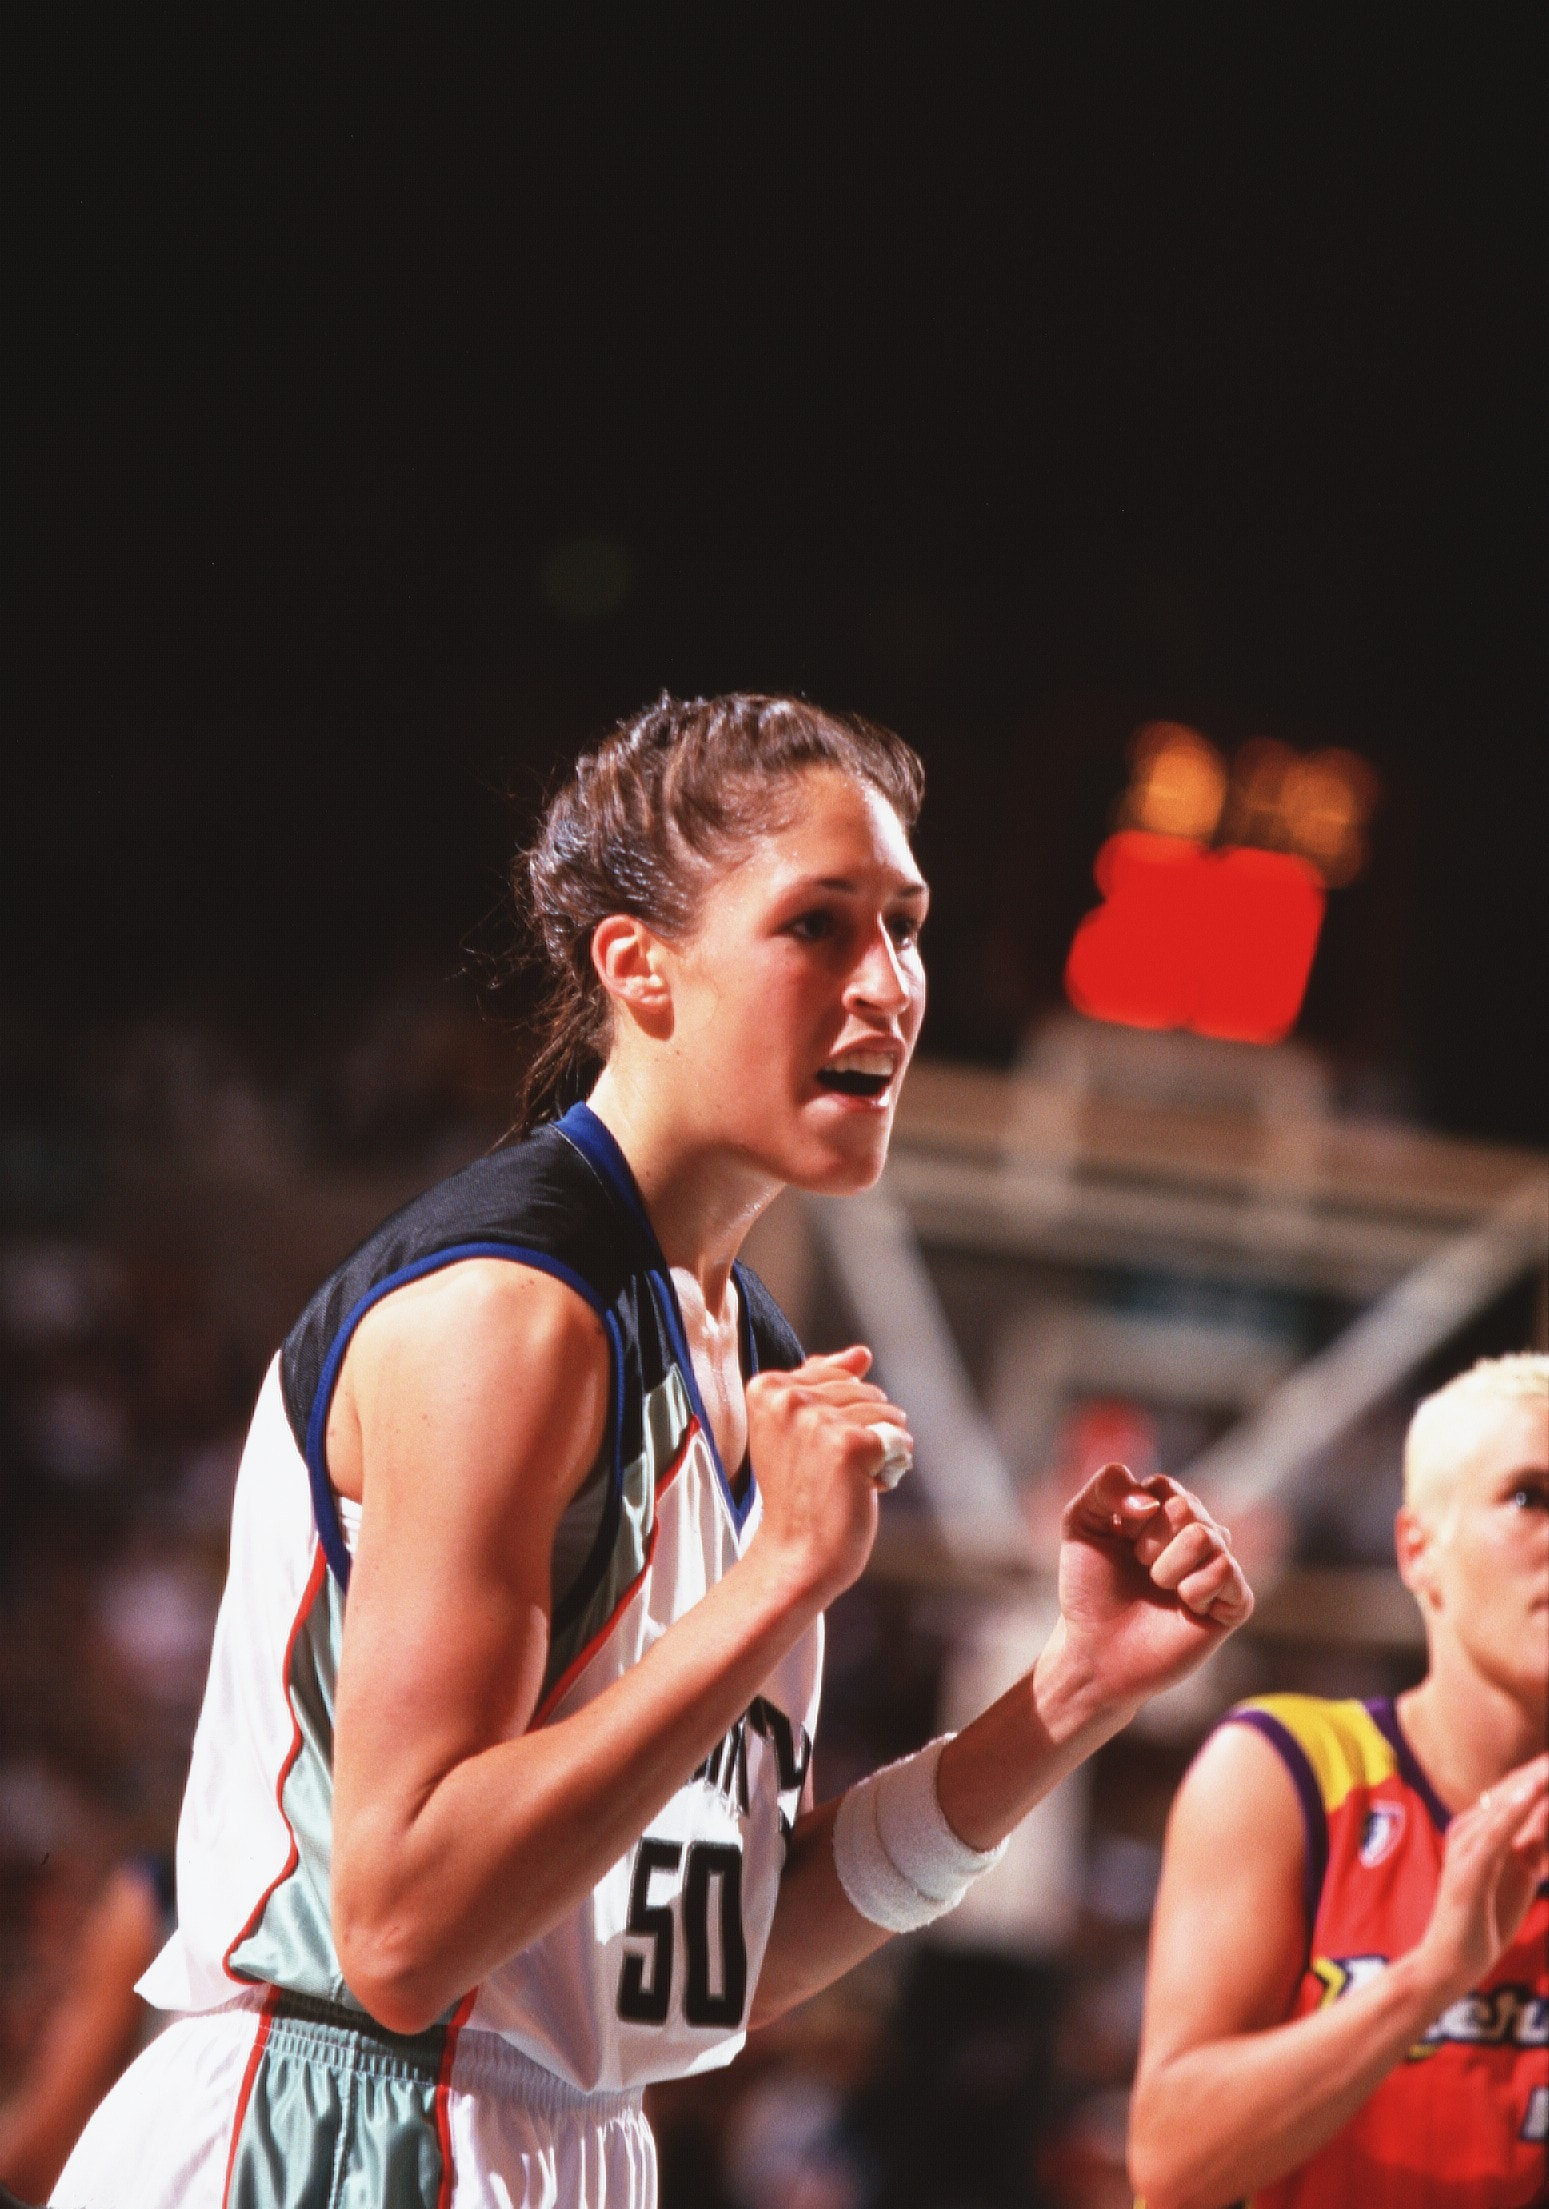 June 29, 1997; The New York Liberty defeat the Phoenix Mercury, 65-57 in the New York Liberty's first home game.